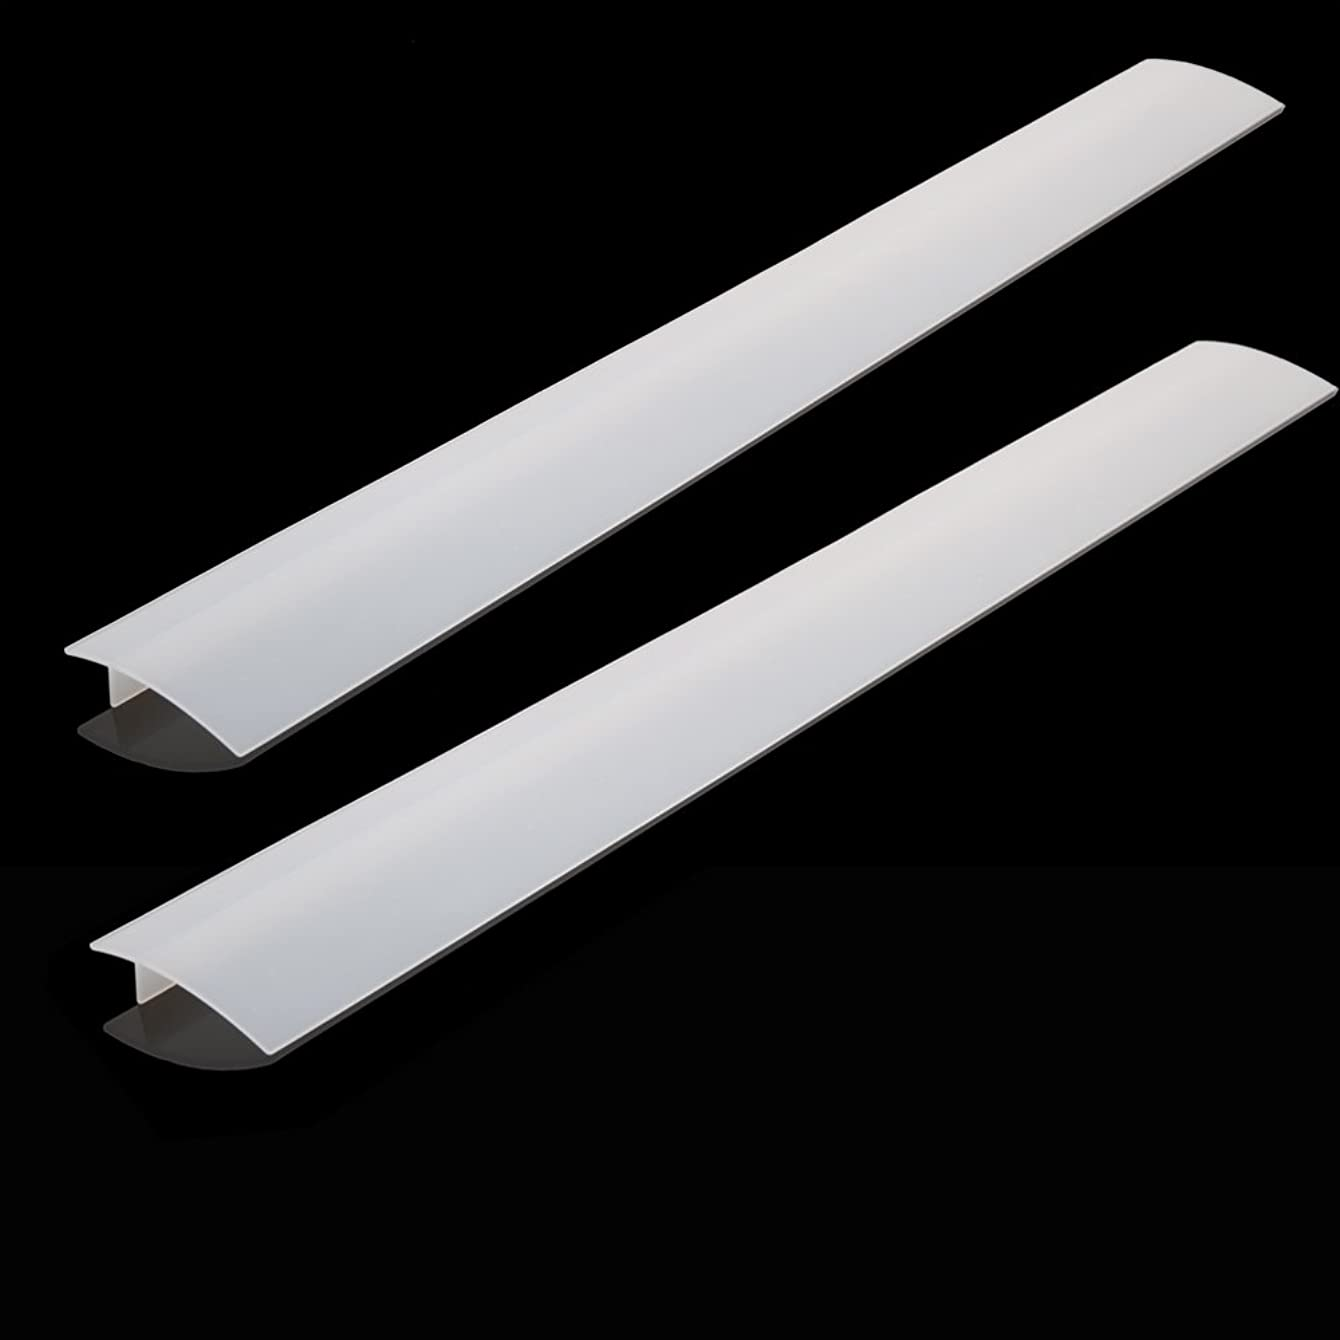 BONTEK 2-Pack Clear Stove Counter Gap Cover Food Grade Silicone Dish Washer Safe